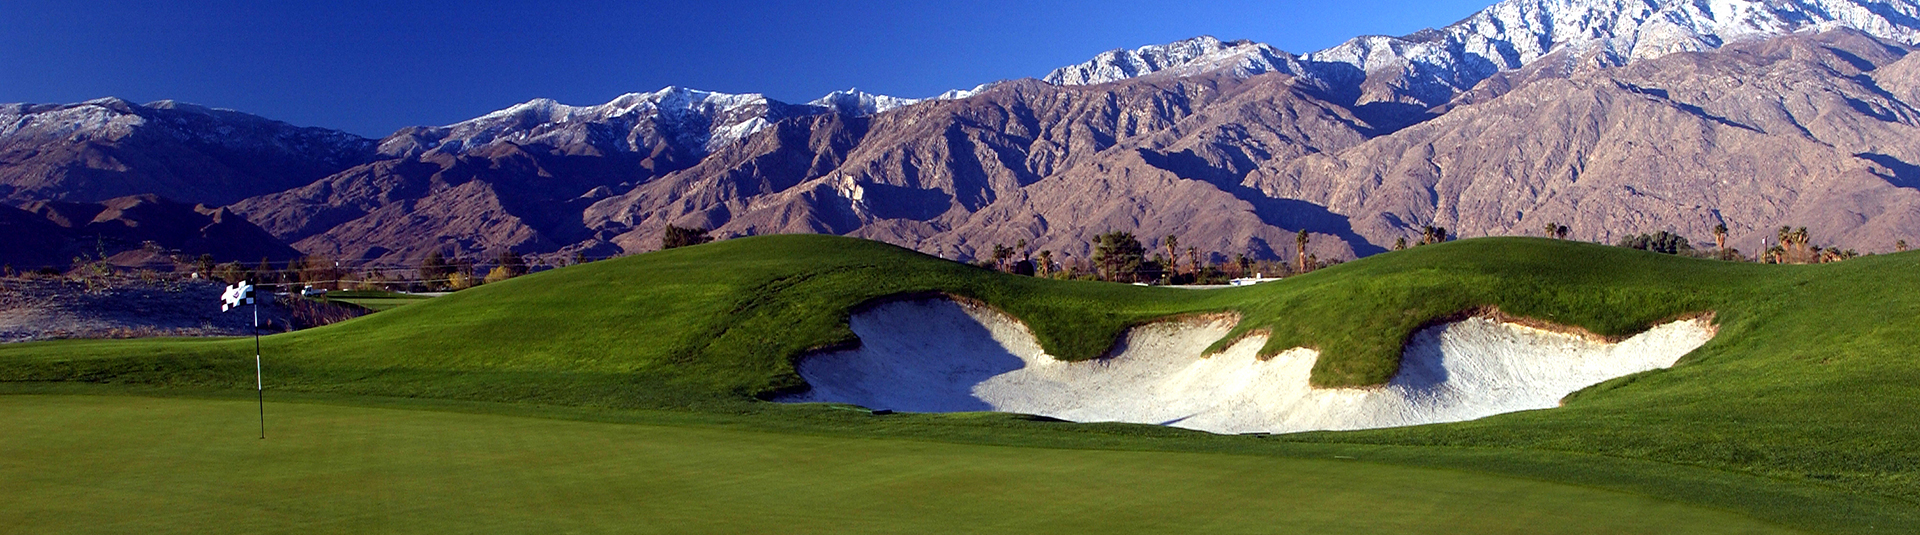 Course and mountains